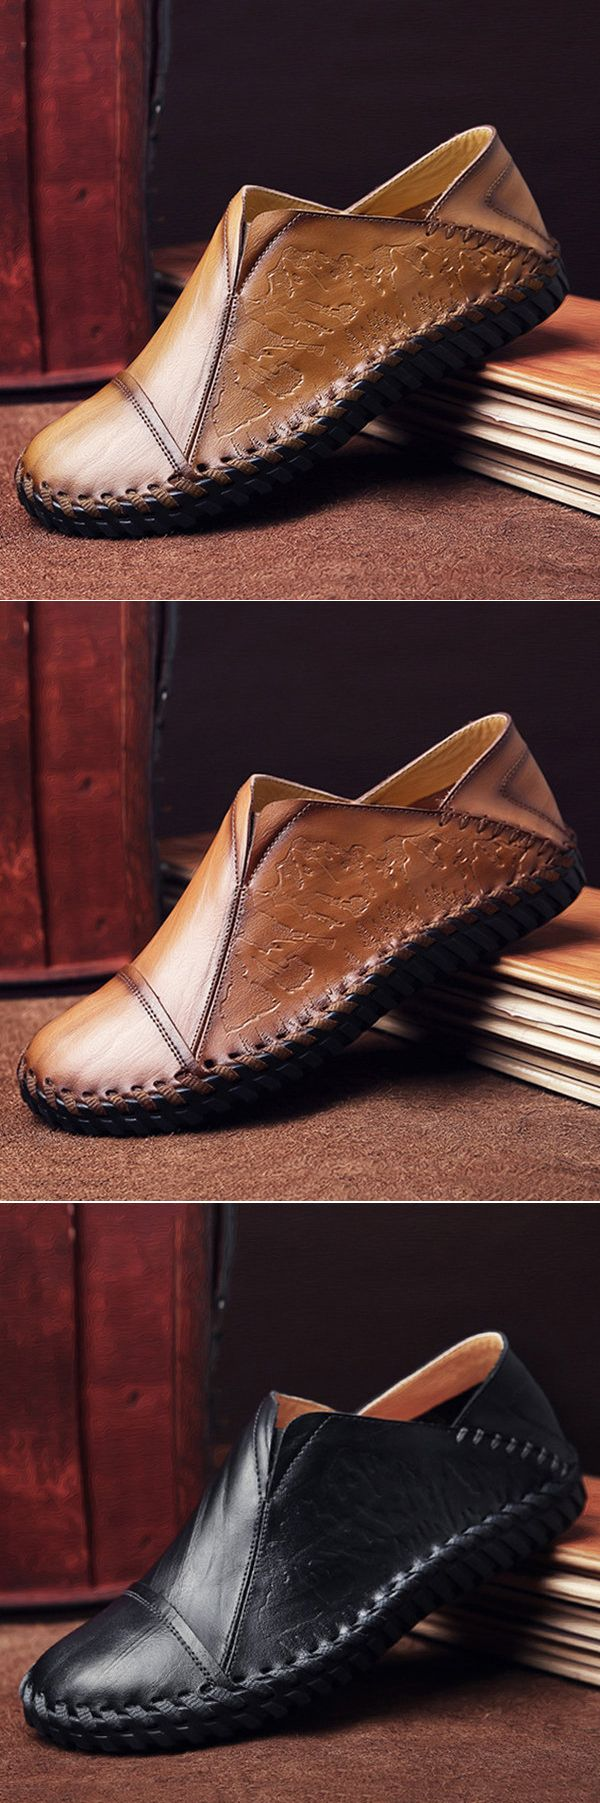 US$38.83 Men Hand Stitching Stylish Cap-toes Vintage Flat Slip On Casual Loafers